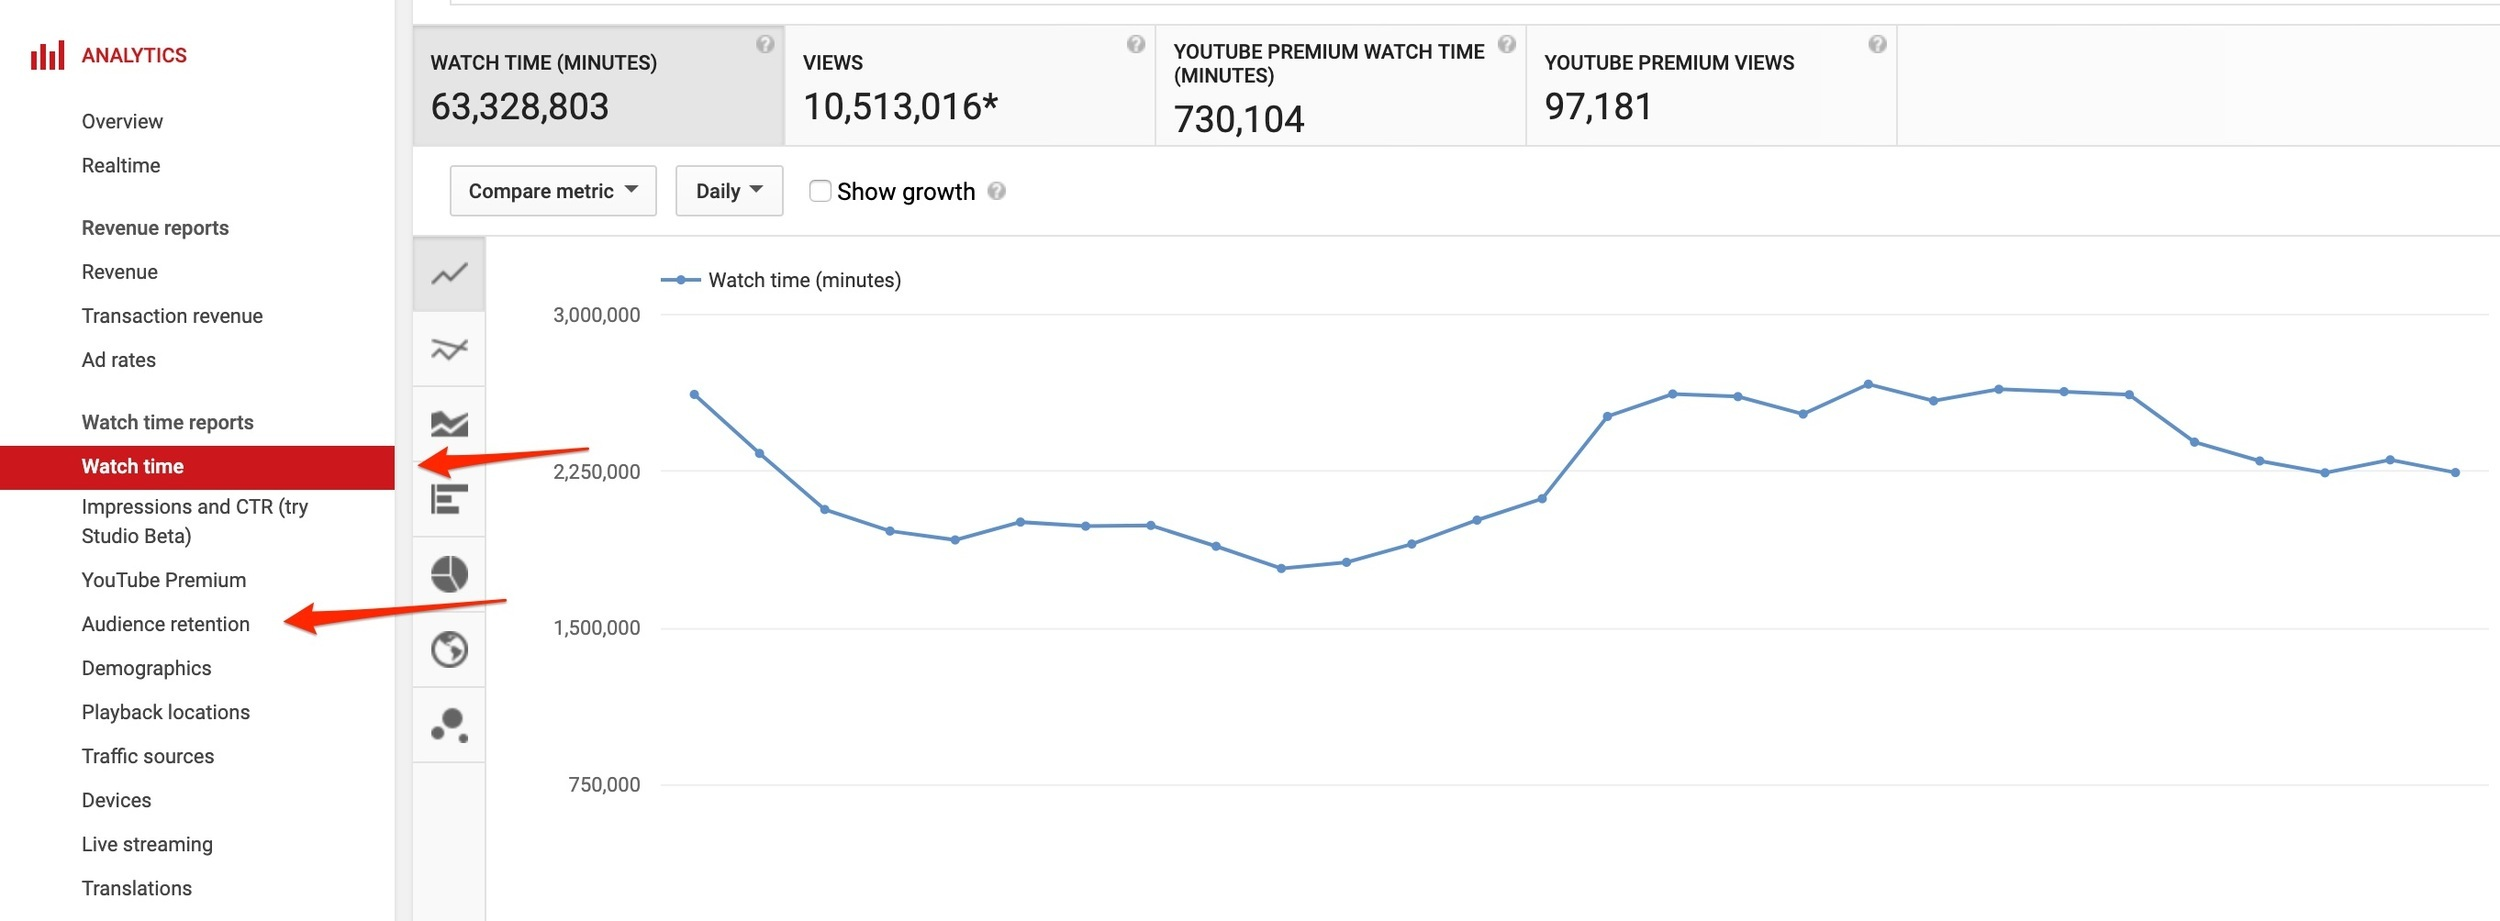 youtube analytics audience retention and watch time